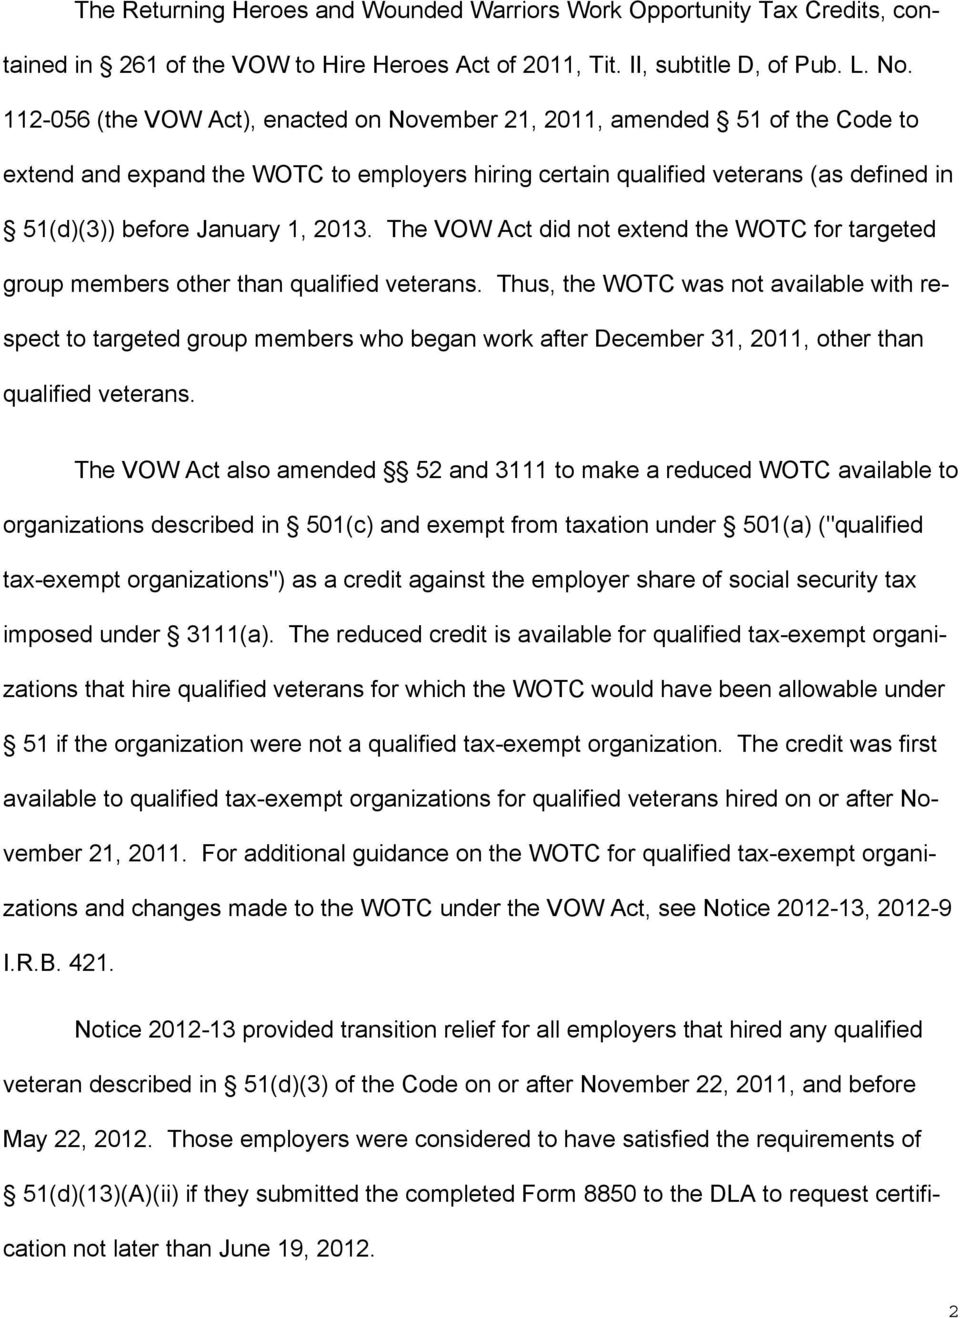 2013. The VOW Act did not extend the WOTC for targeted group members other than qualified veterans.